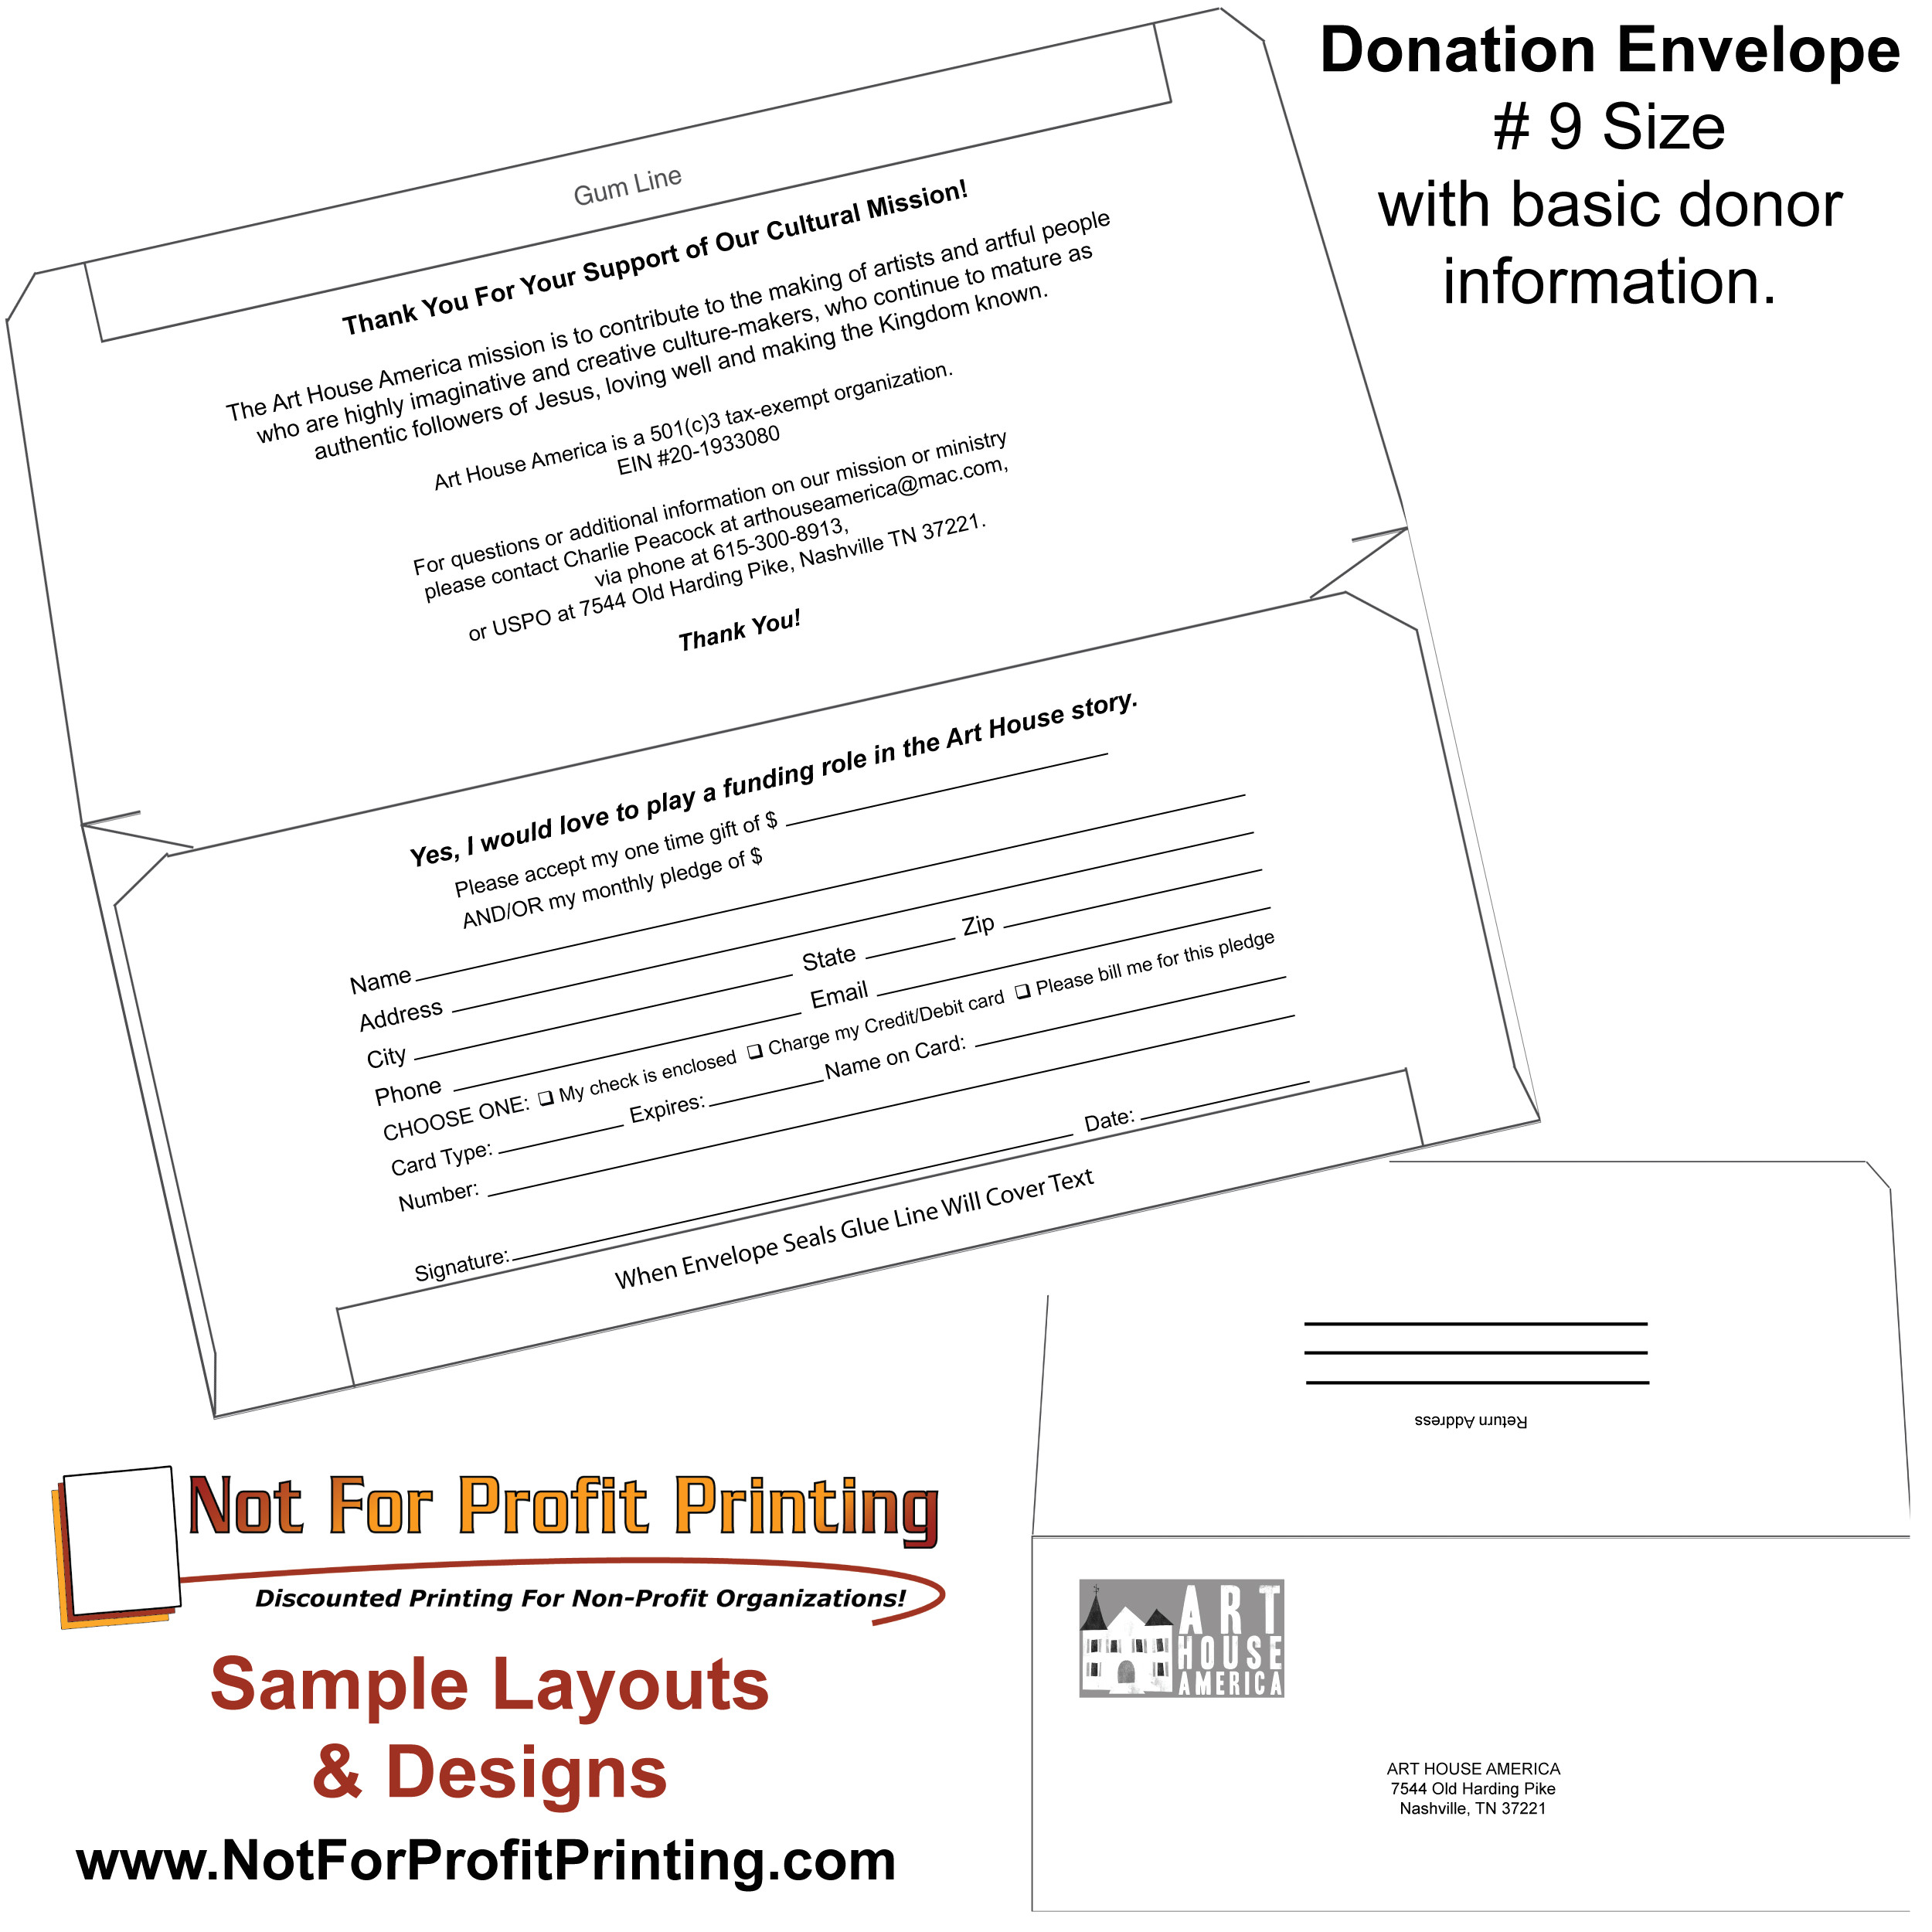 Fundraising Envelope Template Sample Layouts Designs for Donation Envelopes and